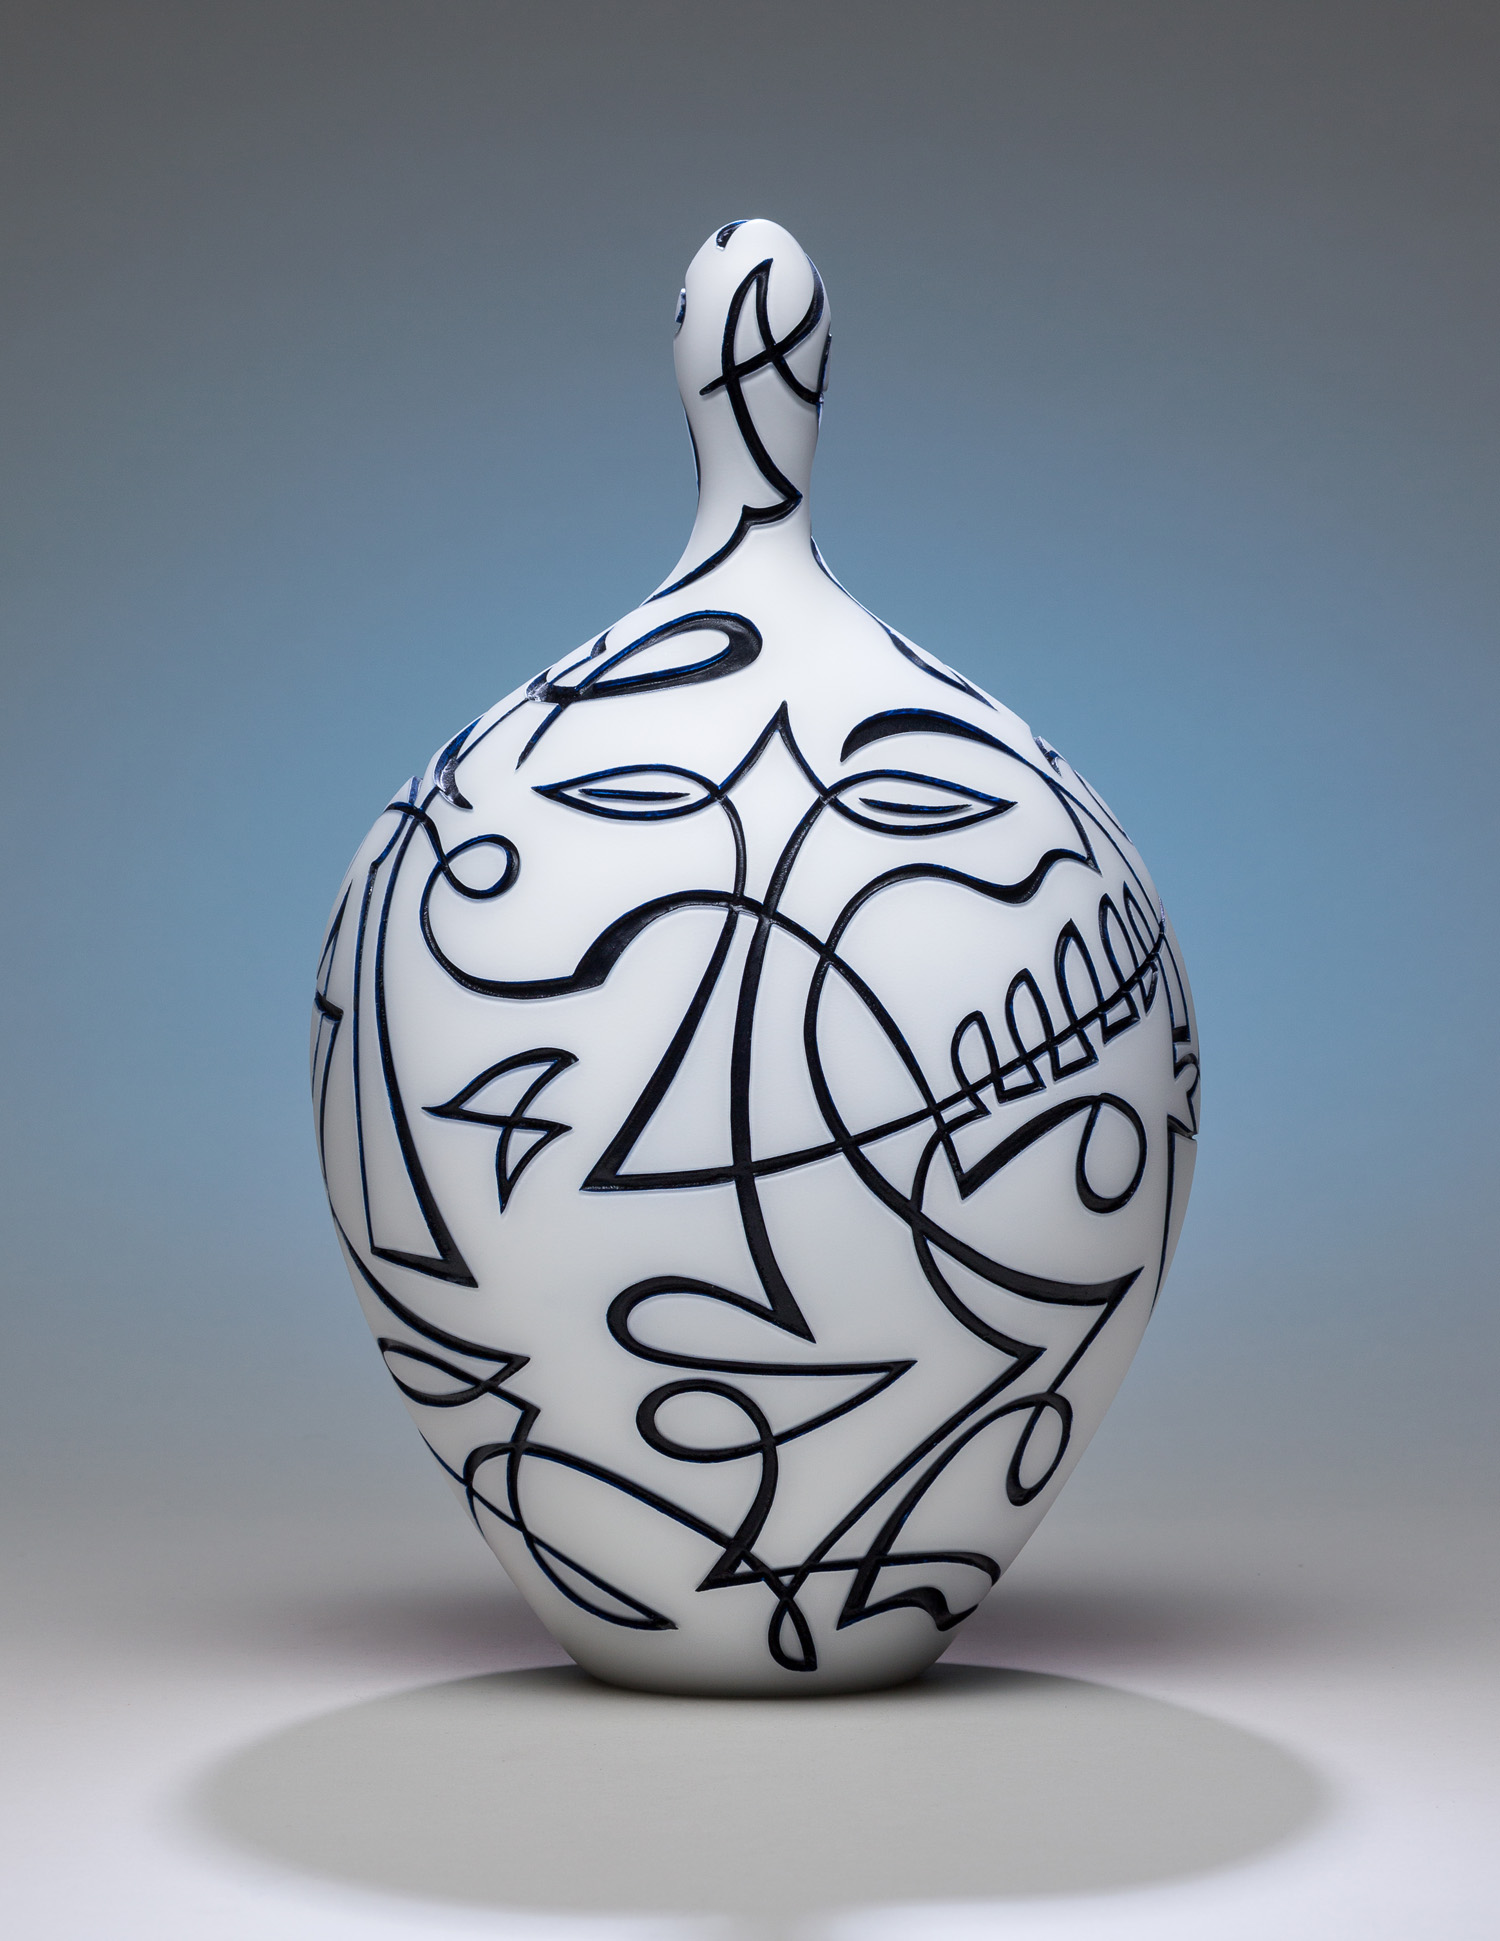 Nearness   2015. Blown glass, sandblasted and acid polished. Applied vitreous enamel. 15 x 9 x 8""